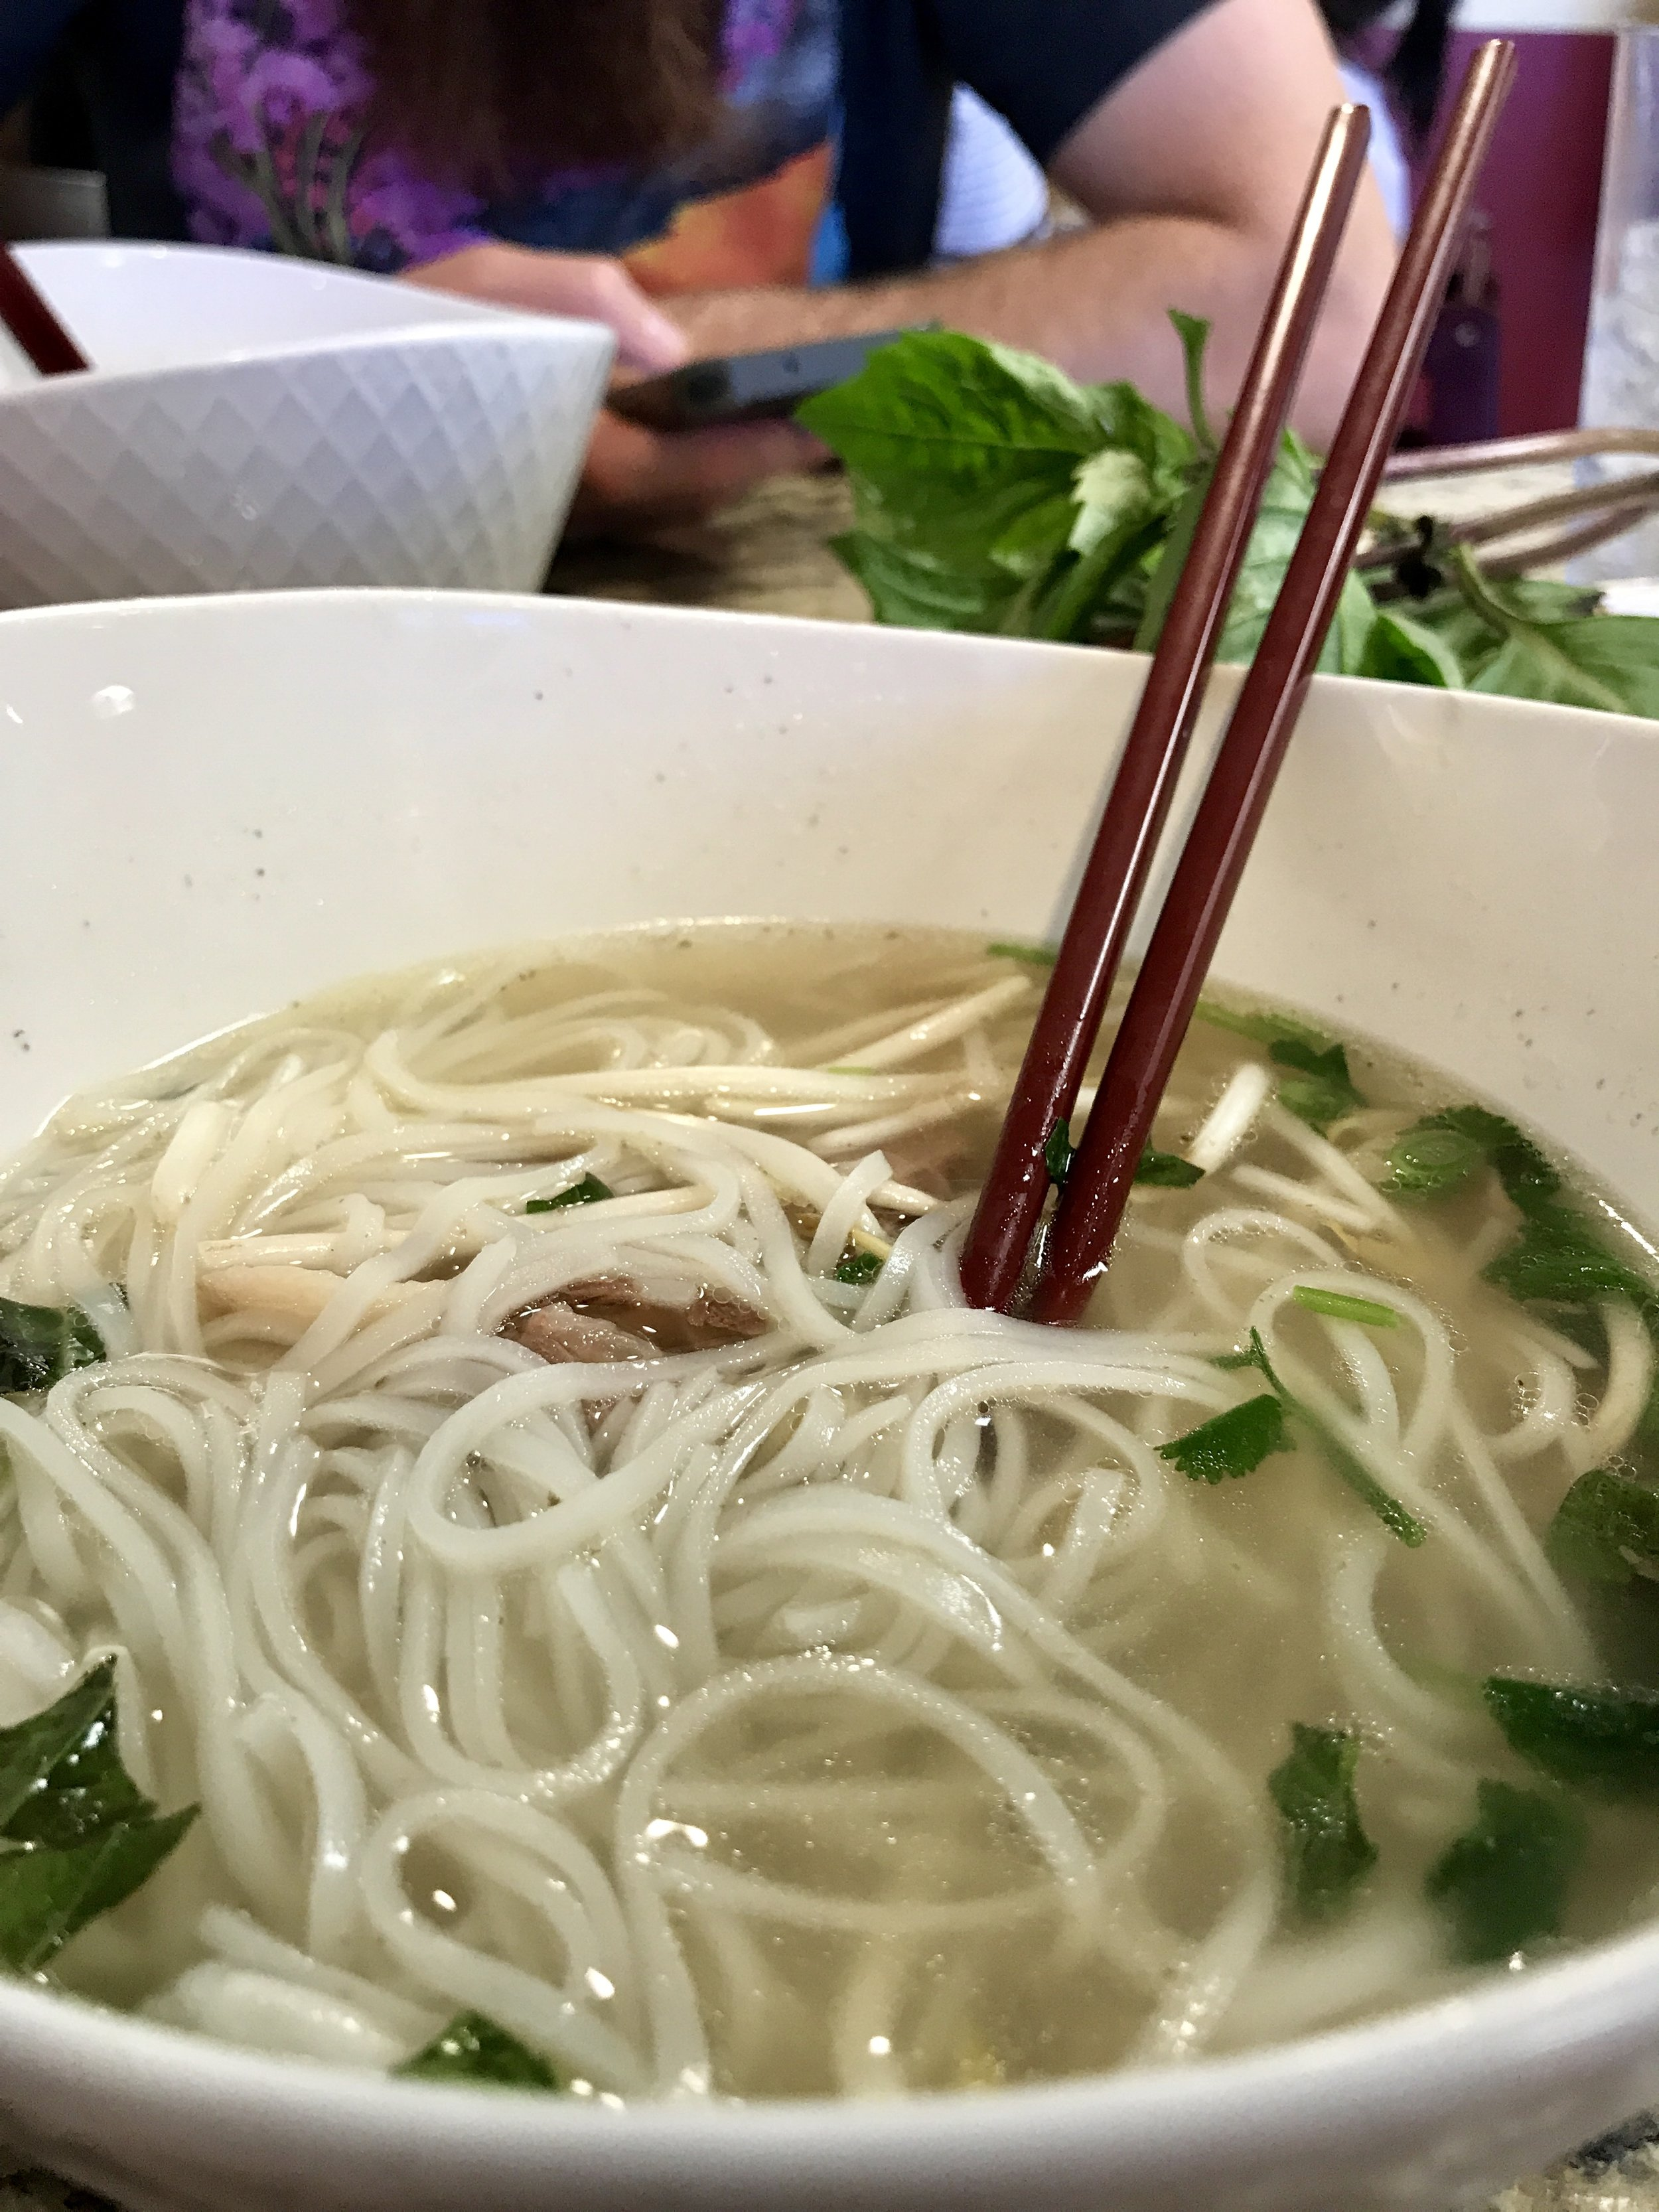 PHO - Whenever Matt and I go to the valley (aka Phoenix) we like to eat cuisine that is not available to us regularly. So, Sunday brunch took place at Da Vang Restaurant off 19th Ave. This was my first time eating Vietnamese, and specifically, pho.If you're like me and not familiar with Vietnamese food, pho consists of broth, rice noodles, and meat (typically beef).AMAZING sums up the experience.The broth was so savory, and there was a plate of fresh basil leaves, bean sprouts, and limes to add to our meal. We also ordered a BBQ pork sandwich - Matt and I concluded that was the best $4 spent in our lives.Pictured is my pho about 10 minutes in. It comes with a LOT of food -next time we are only ordering one bowl for us to share. So looking forward to the next time we get to go eat pho and BBQ sandwiches. Thank you, Phoenix & Da Vang Restaurant.